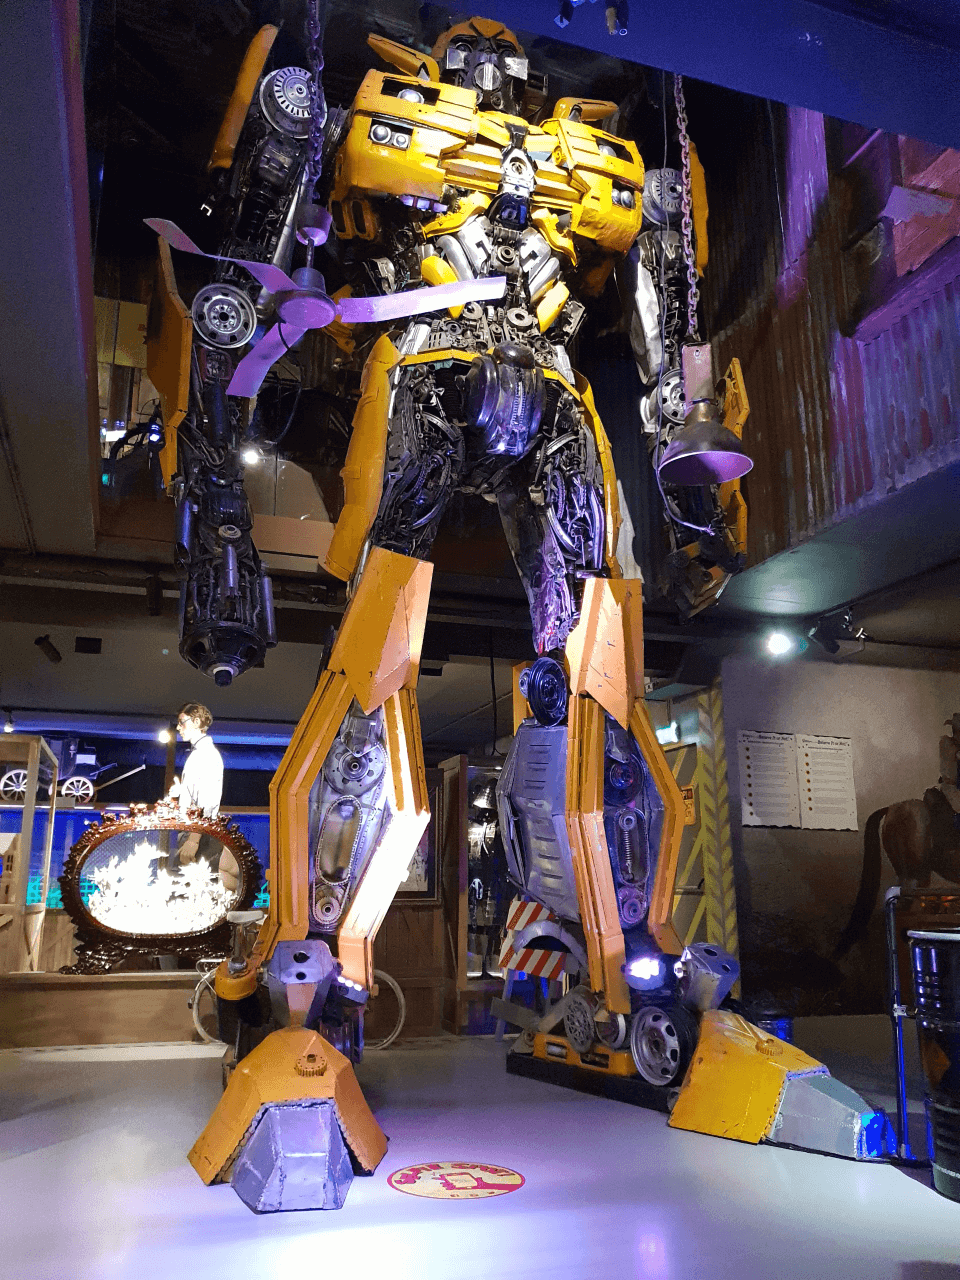 Transformers at Ripley's Believe It or Not Amsterdam!